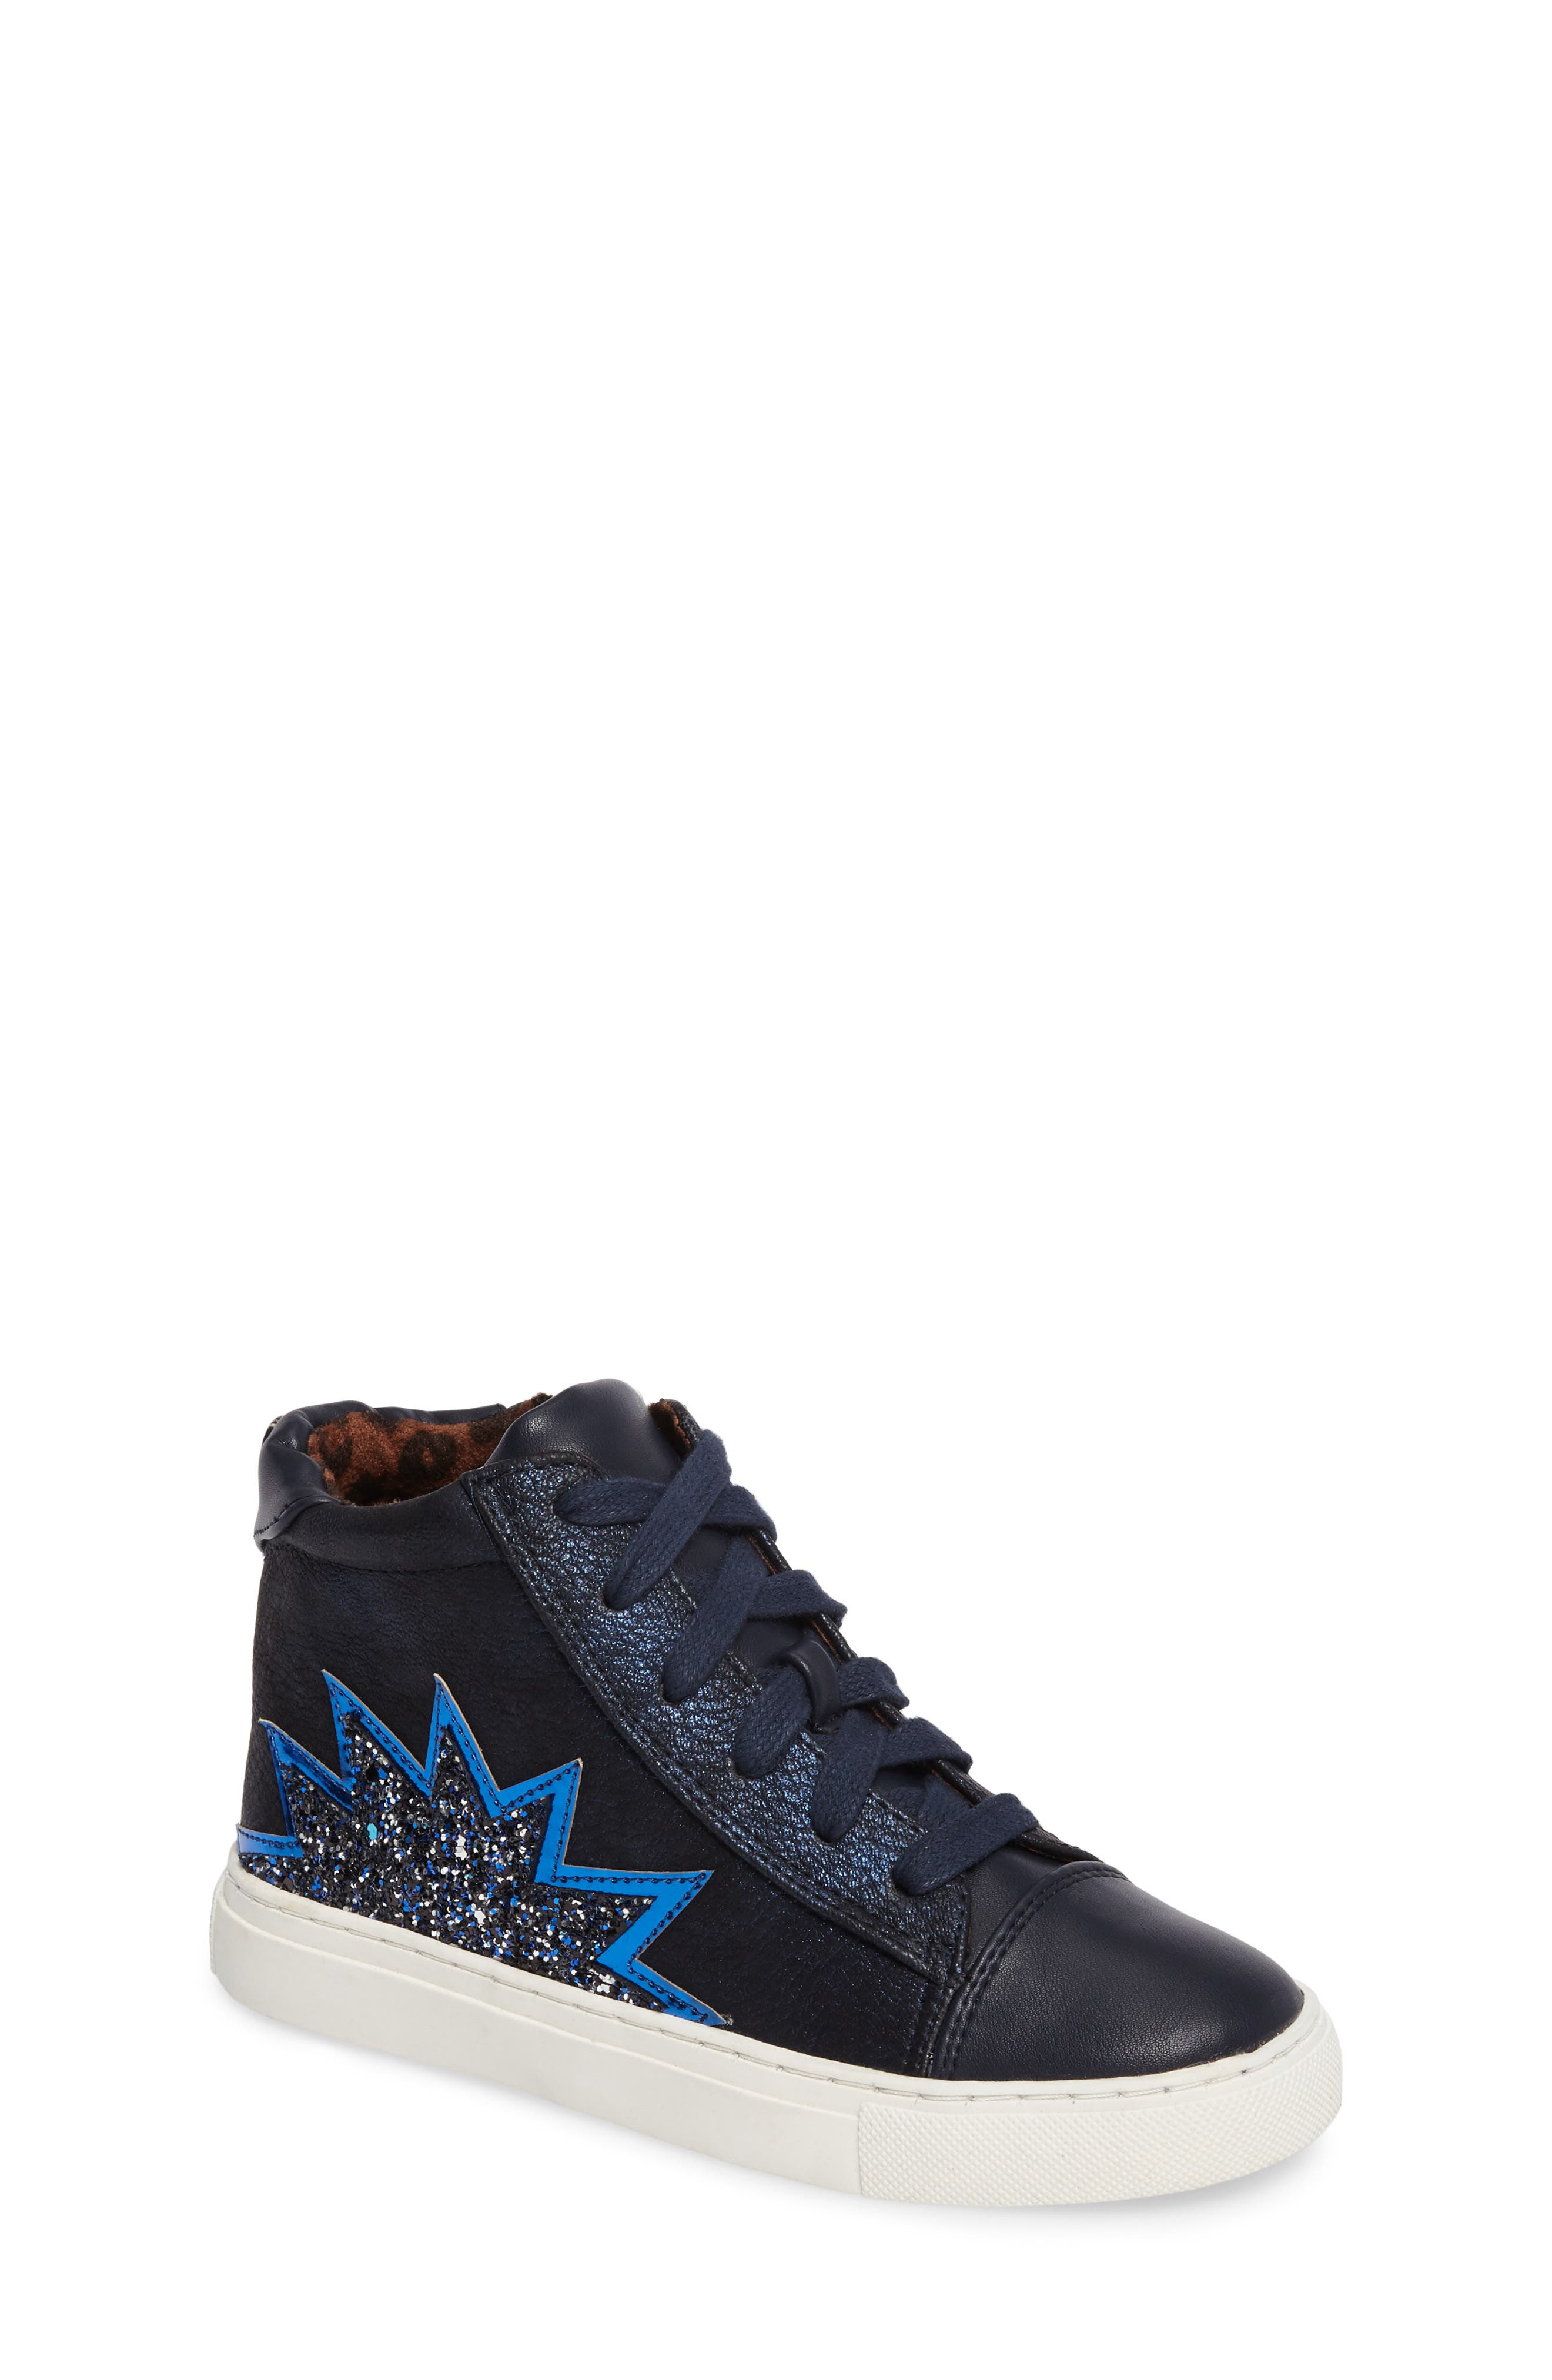 Steve Madden Jflash Glitter Star High Top Sneaker (Toddler, Little Kid & Big Kid)